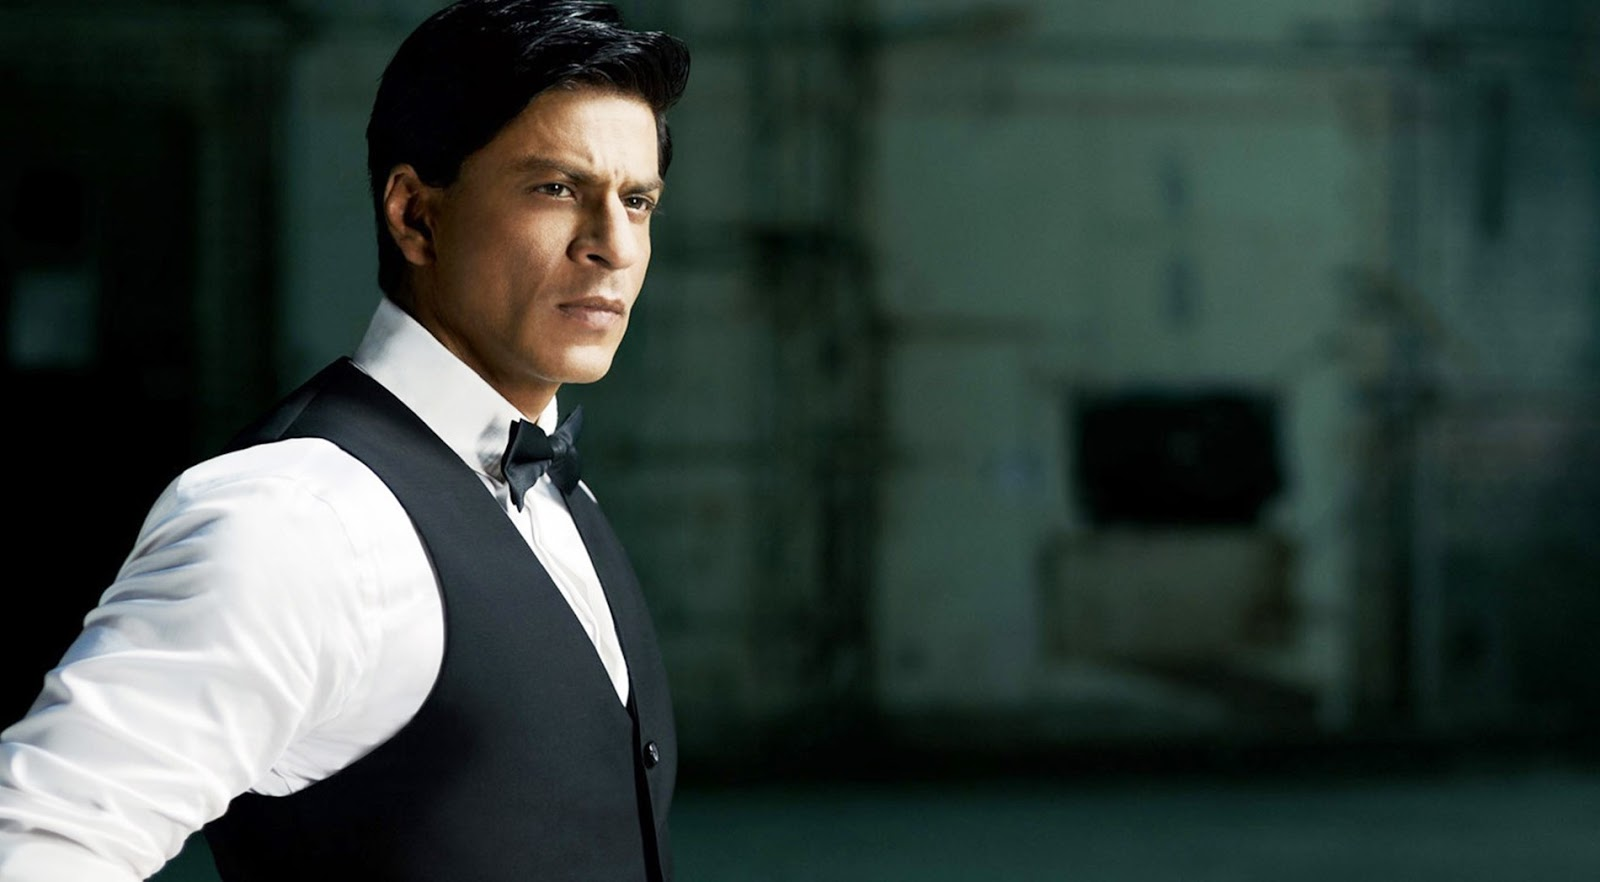 shahrukh khan hd wallpaper - best actors wallpepar